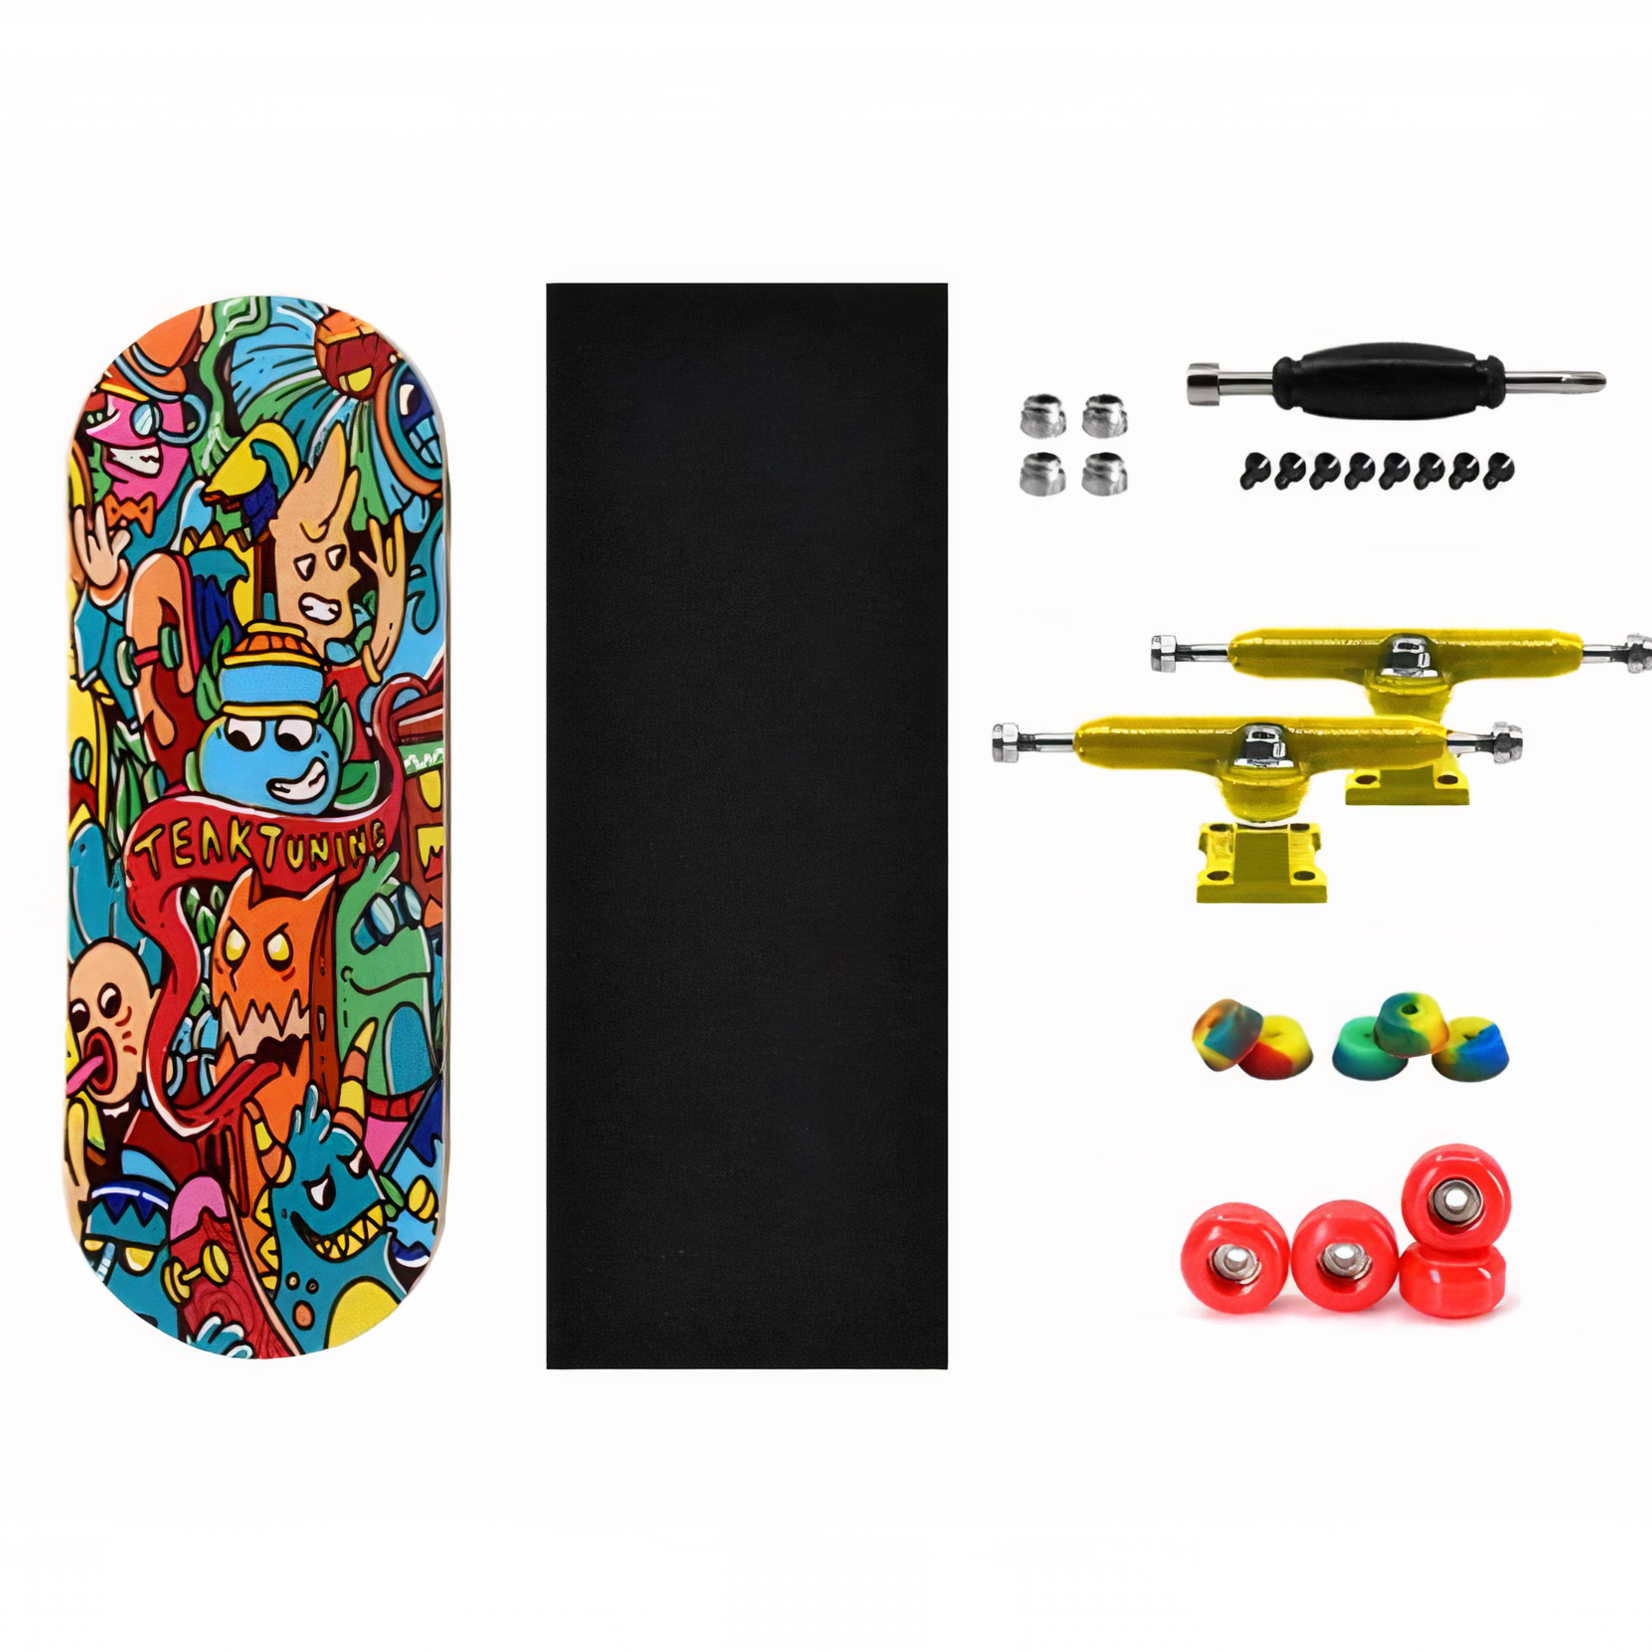 PROlific PROlific - Upgraded Fingerboard 32mm - Bubble Bushings and Monsters